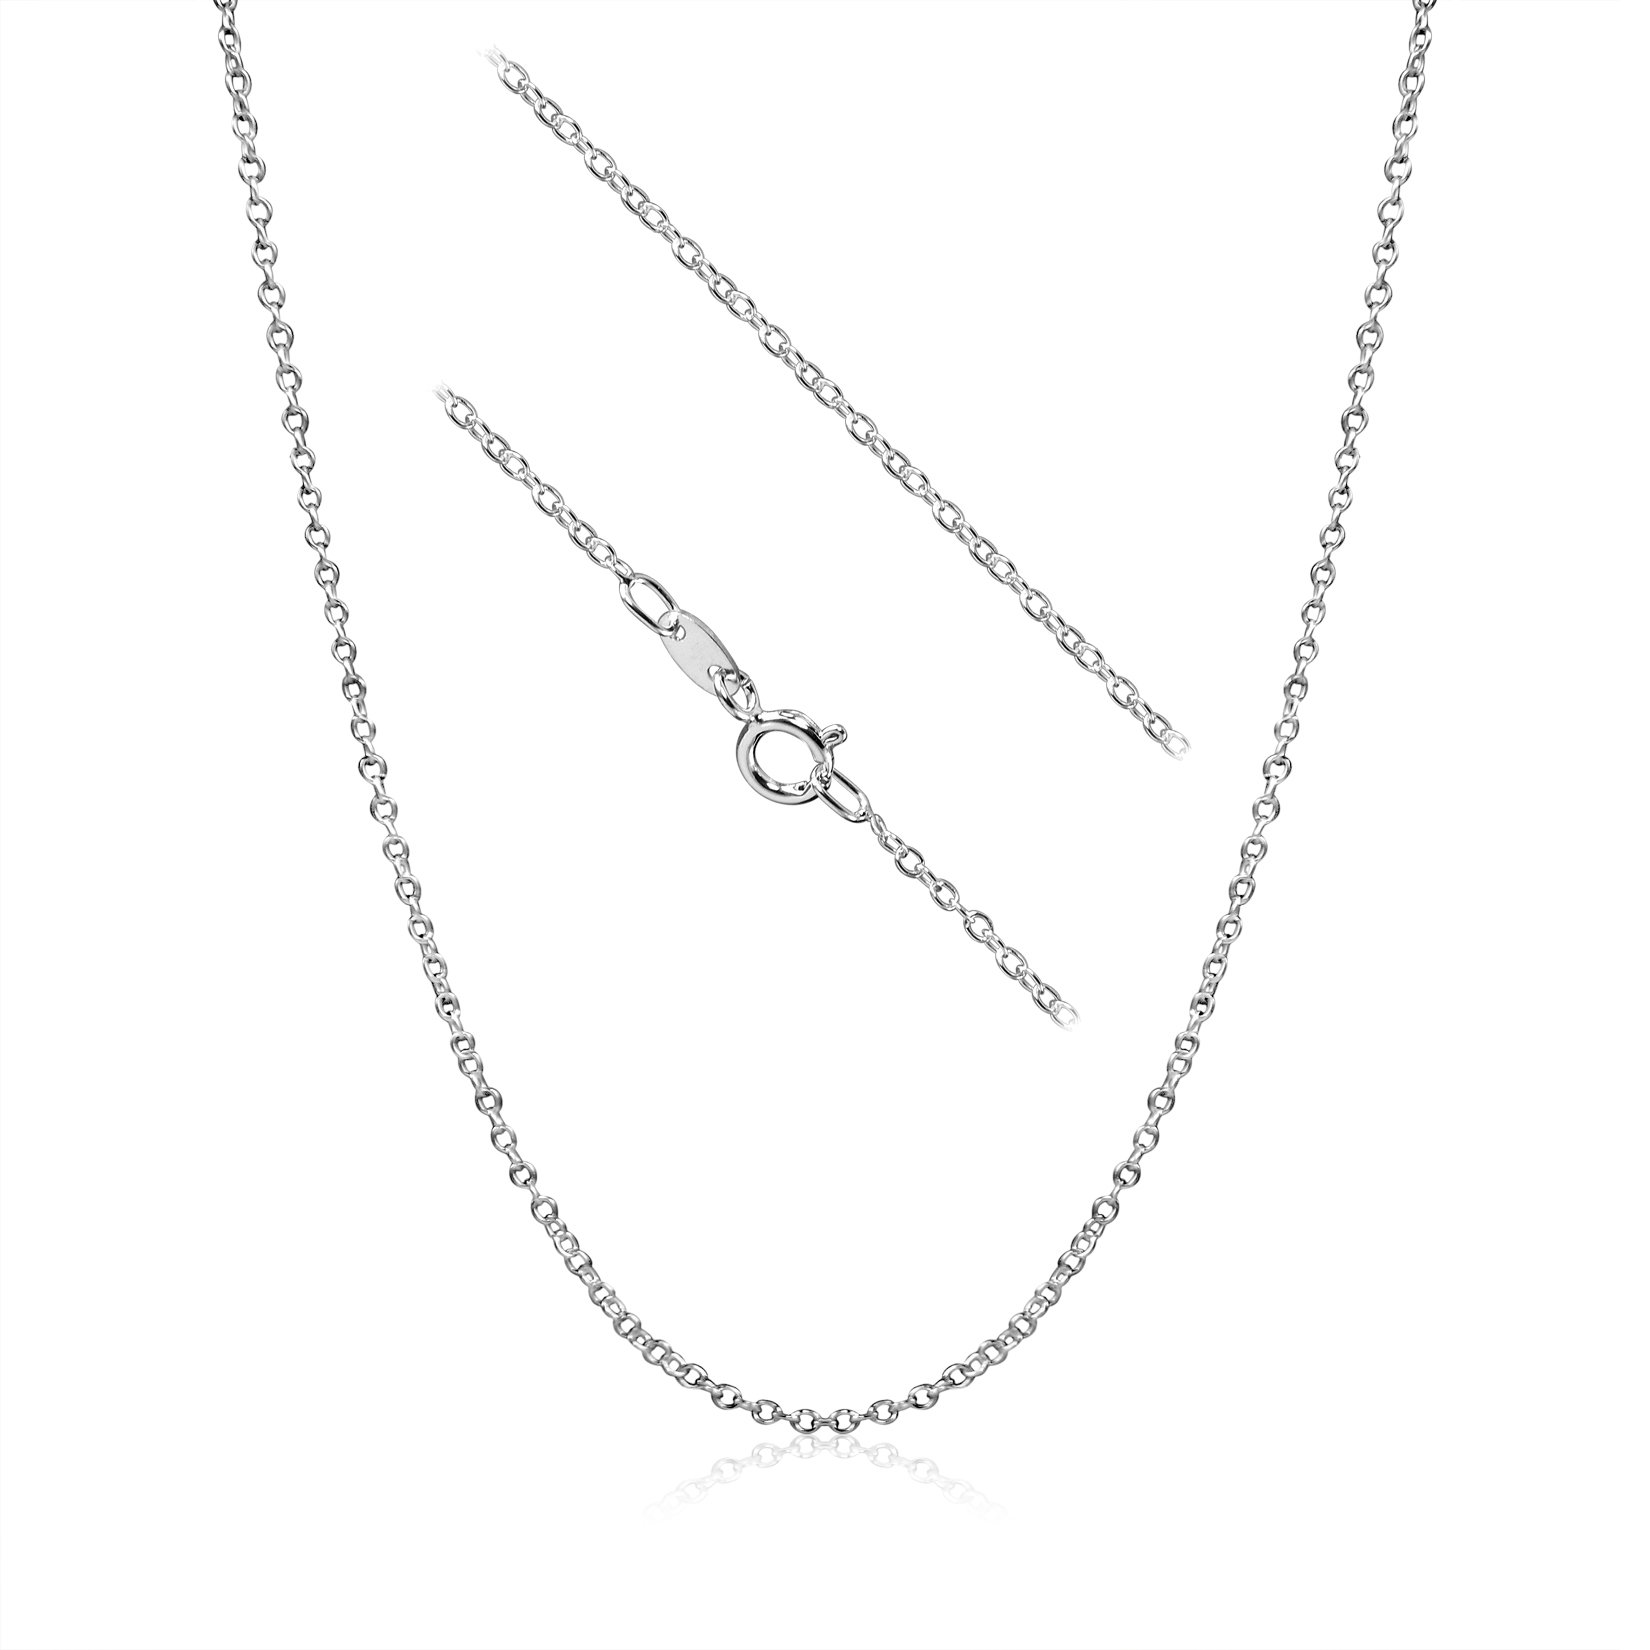 Kezef Sterling Silver 1.5mm Cable Chain Necklace 18 inch